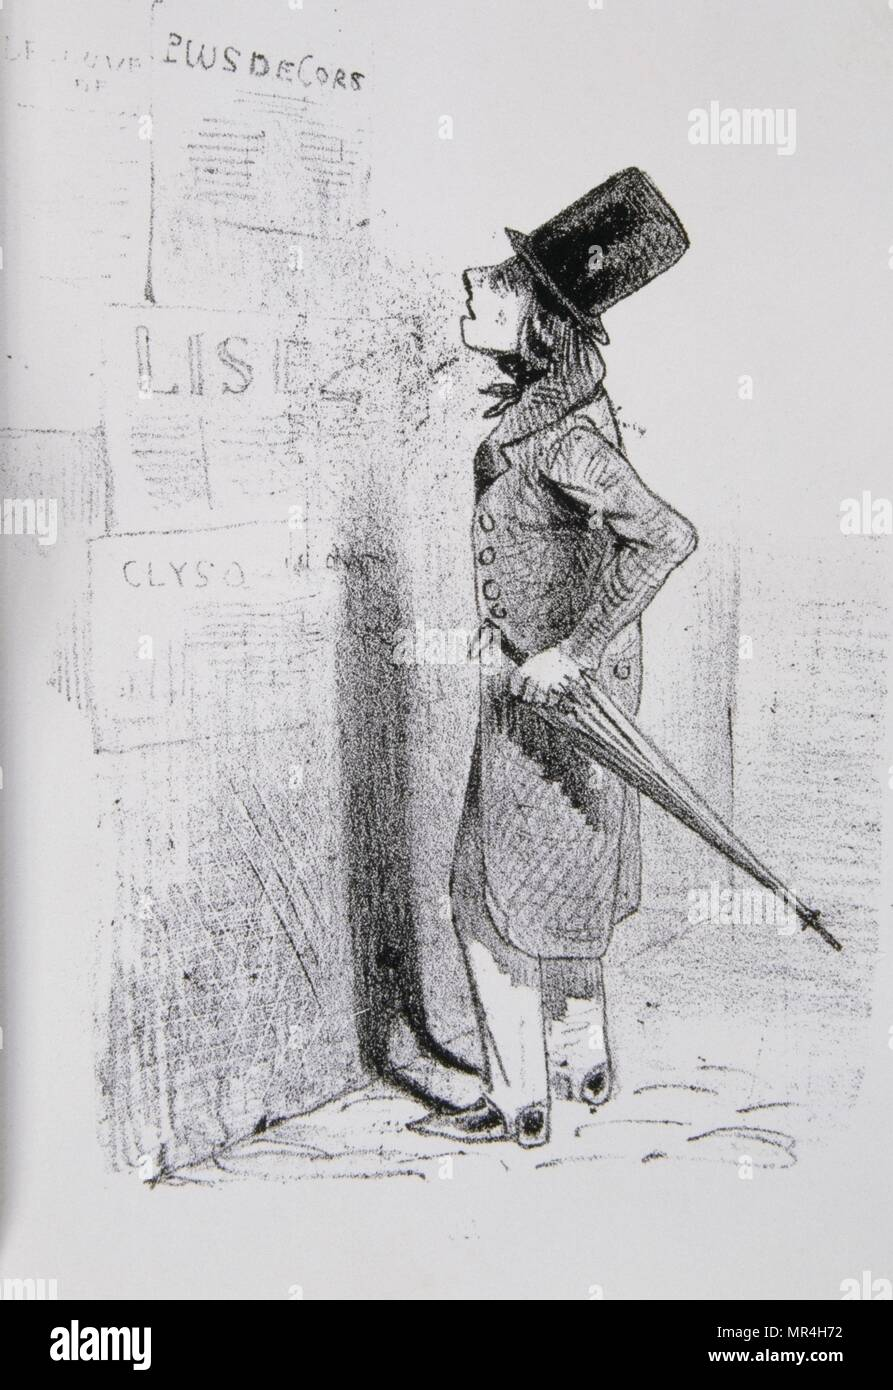 Drawing of a man in Paris reading news bills posted on a wall. 1850 - Stock Image